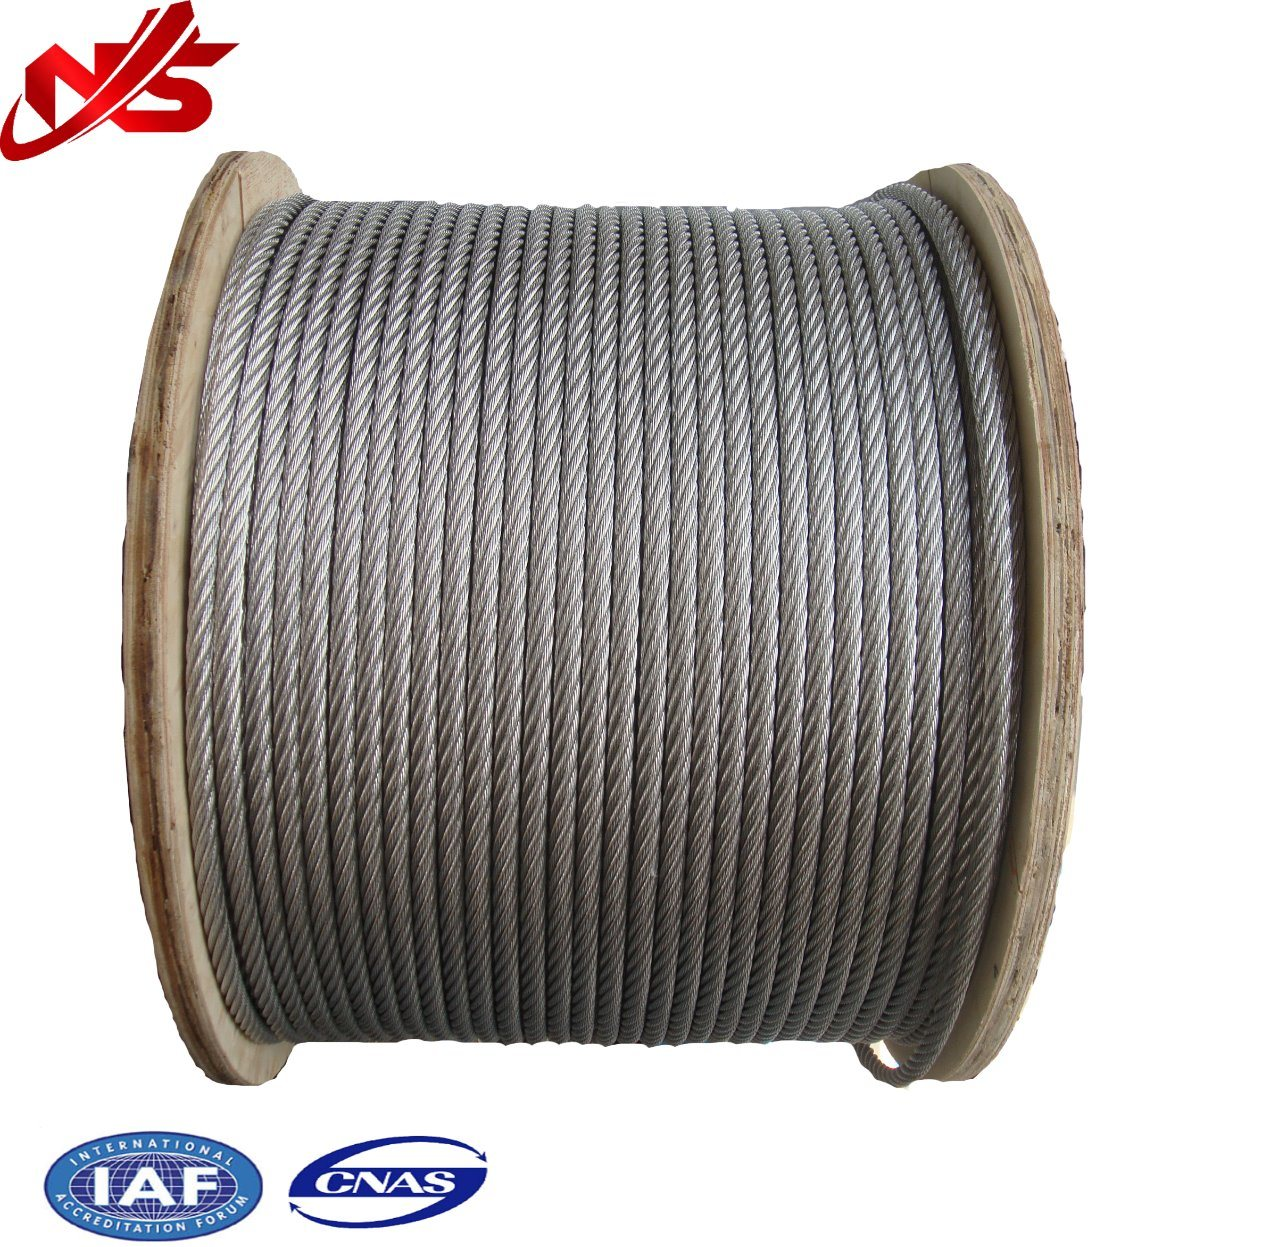 China Galvanized Steel Wire Rope 6X7+FC/Iws/Iwrc for Electric Car ...